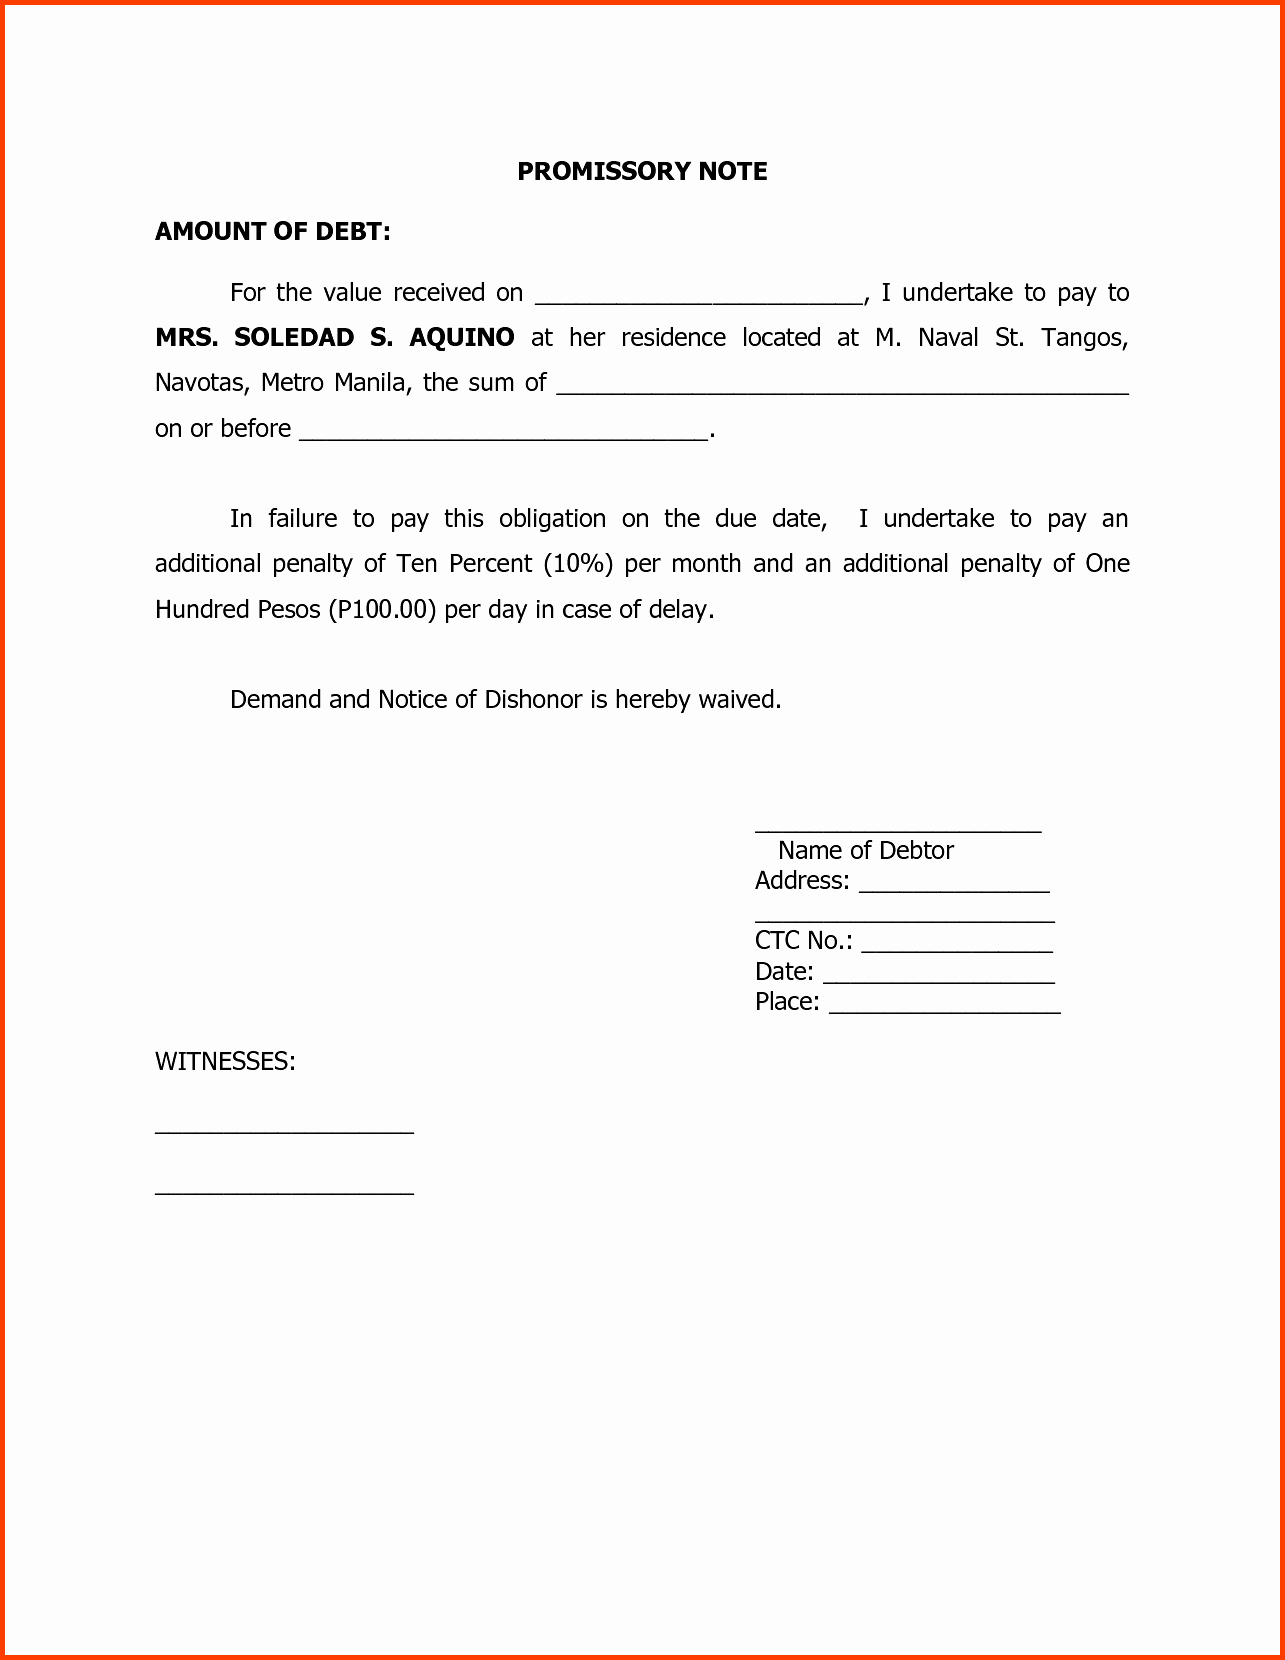 Demand Letter Promissory Note Template - Sample Promissory Note to Pay Debt Elegant Sponsorship Agreement